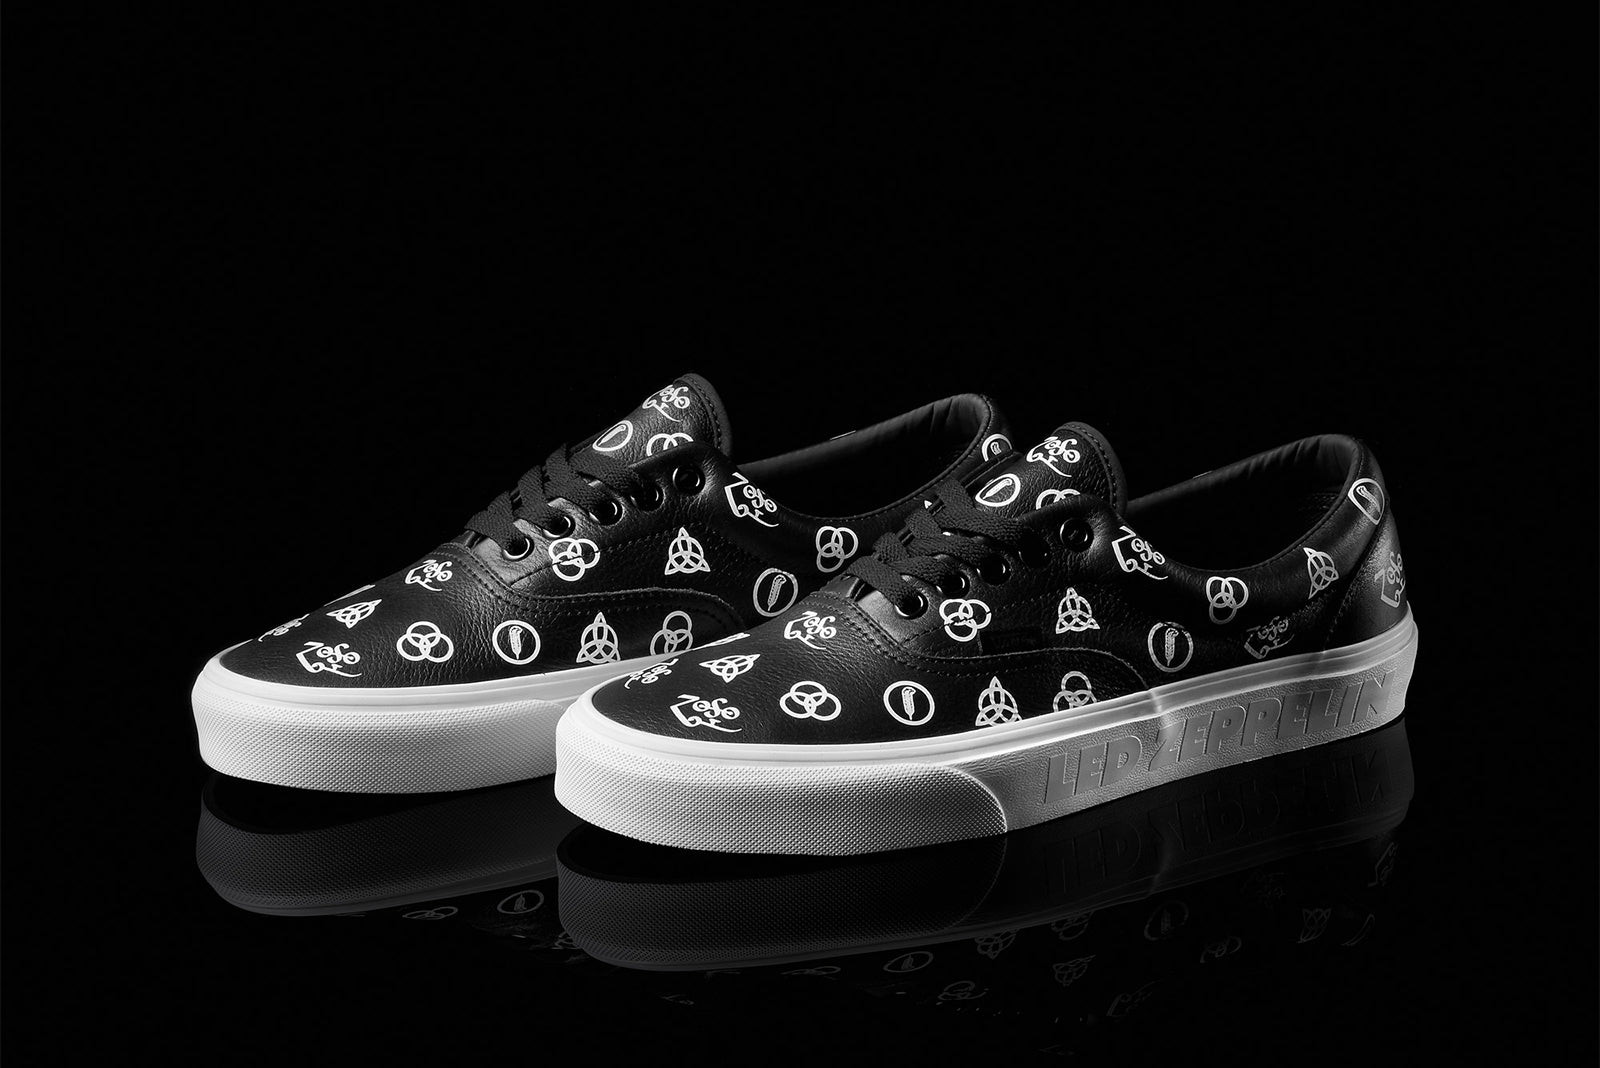 8cdb83287494bd The Vans x Led Zepplin collection launches at HANON